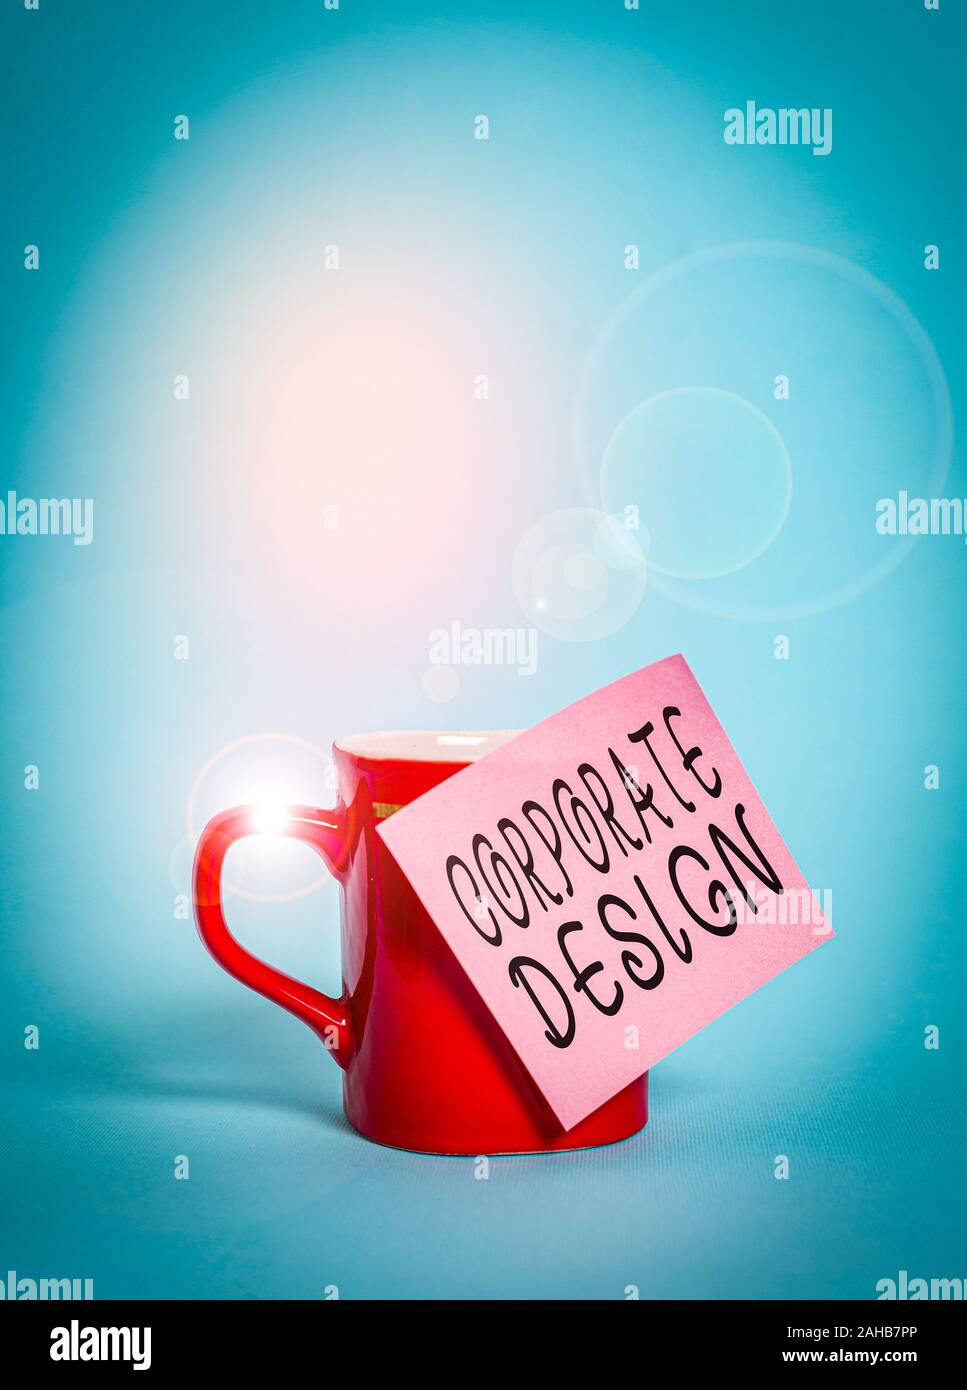 Text Sign Showing Corporate Design Business Photo Showcasing Official Graphical Design Of The Logo And Name Of A Company Coffee Tea Cup Mug Colored S Stock Photo Alamy